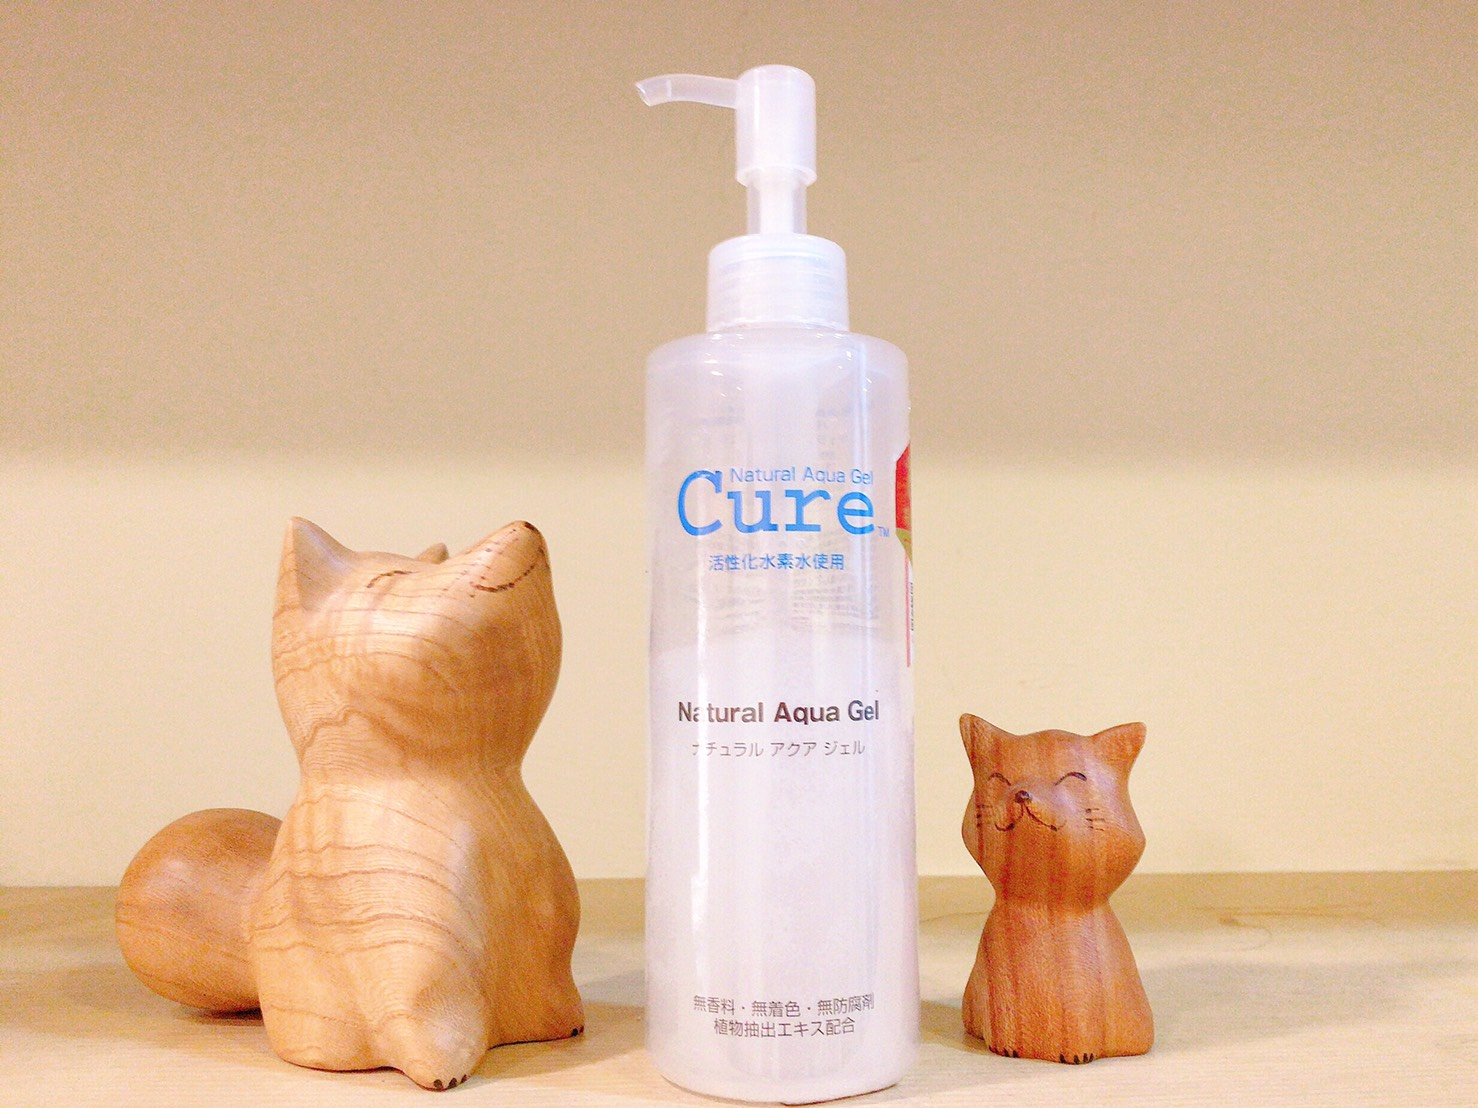 日本敏感肌保養品Cure Natural Aqua Gel